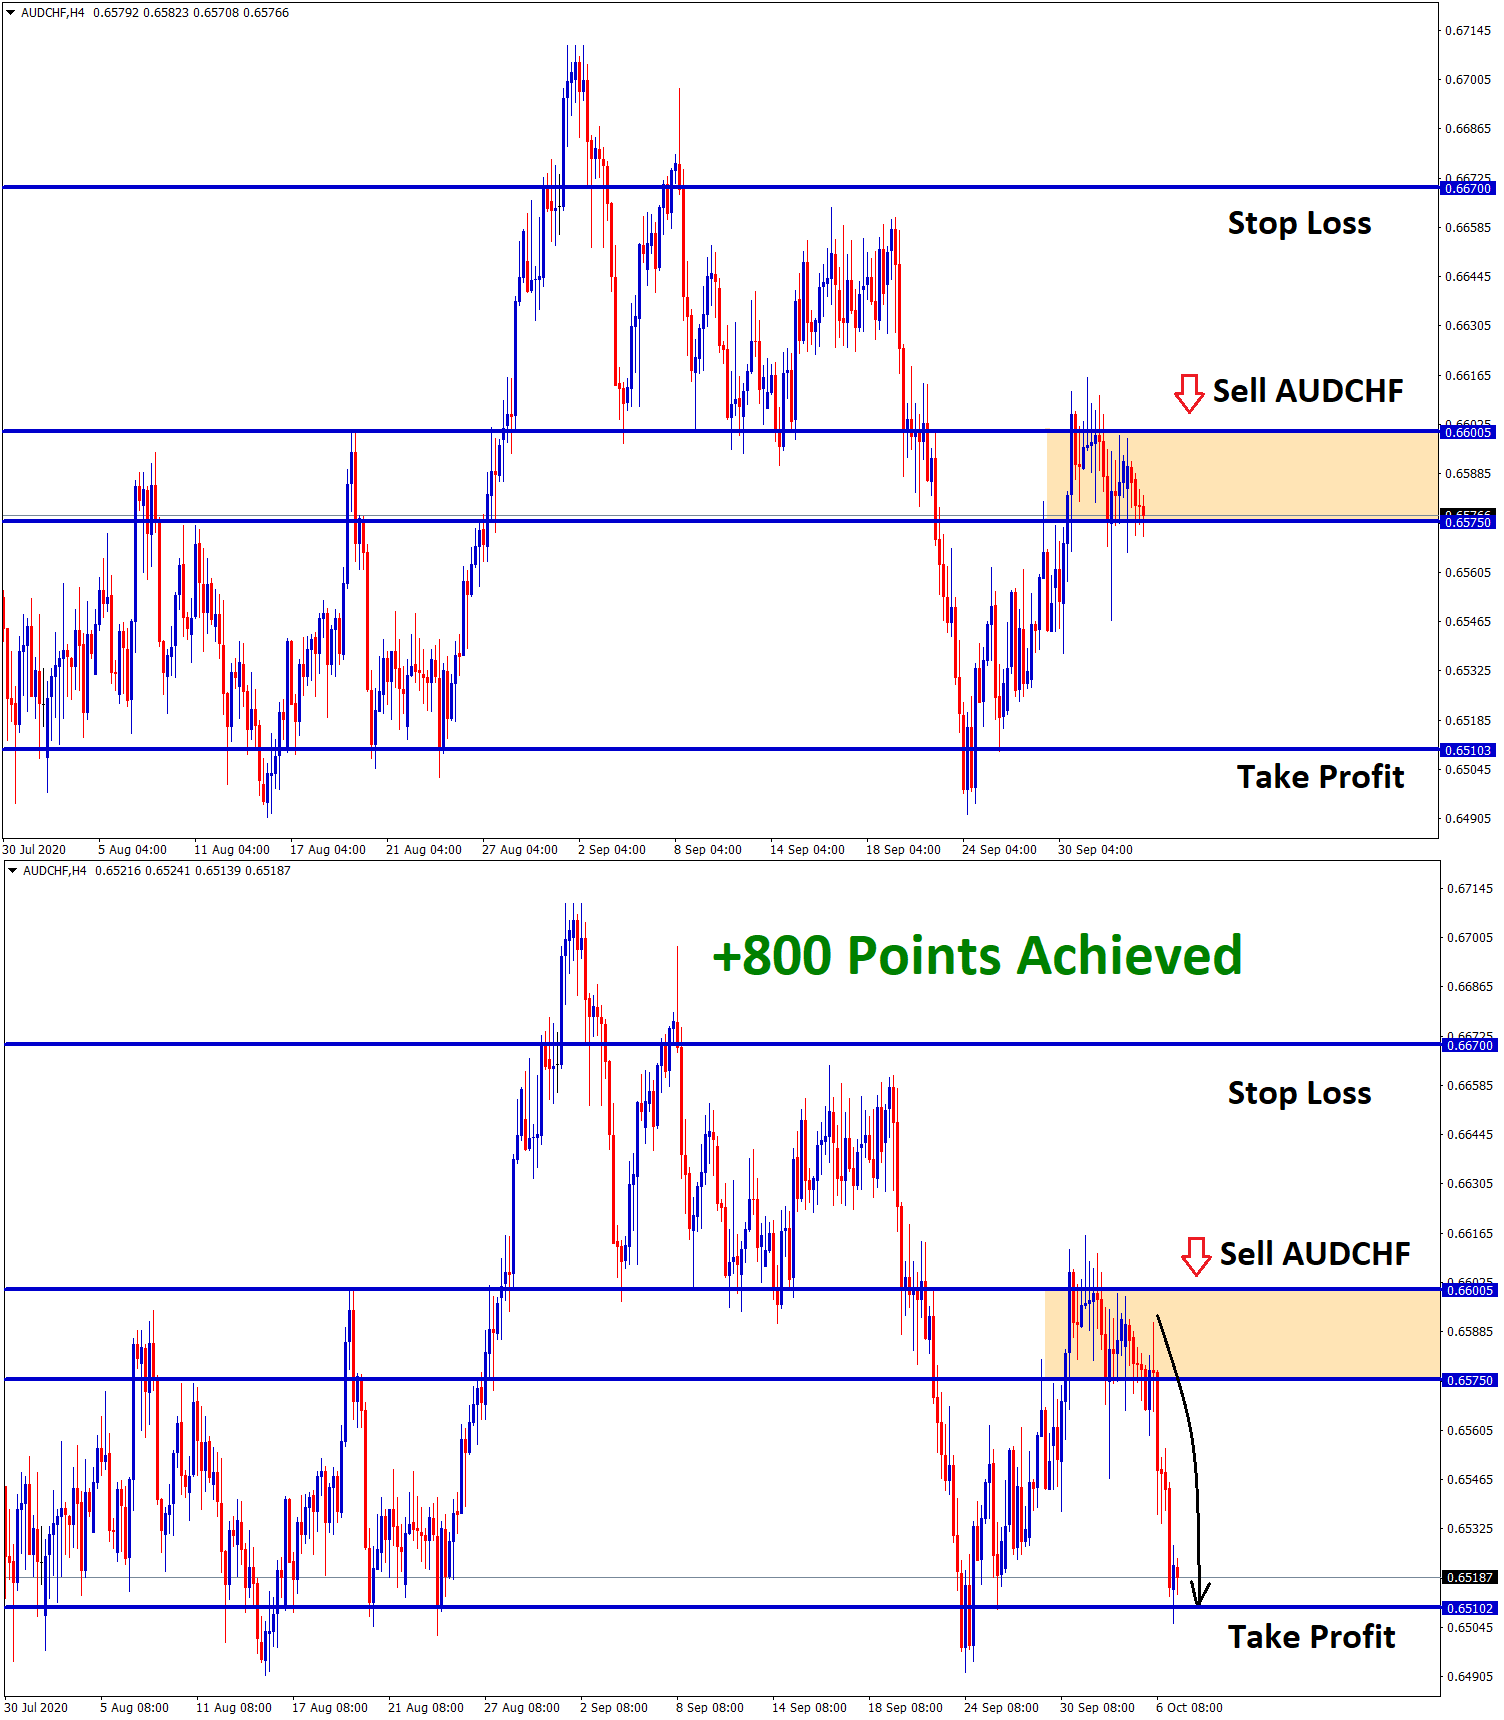 audchf achieved 800 points in sell after retest of descending triangle